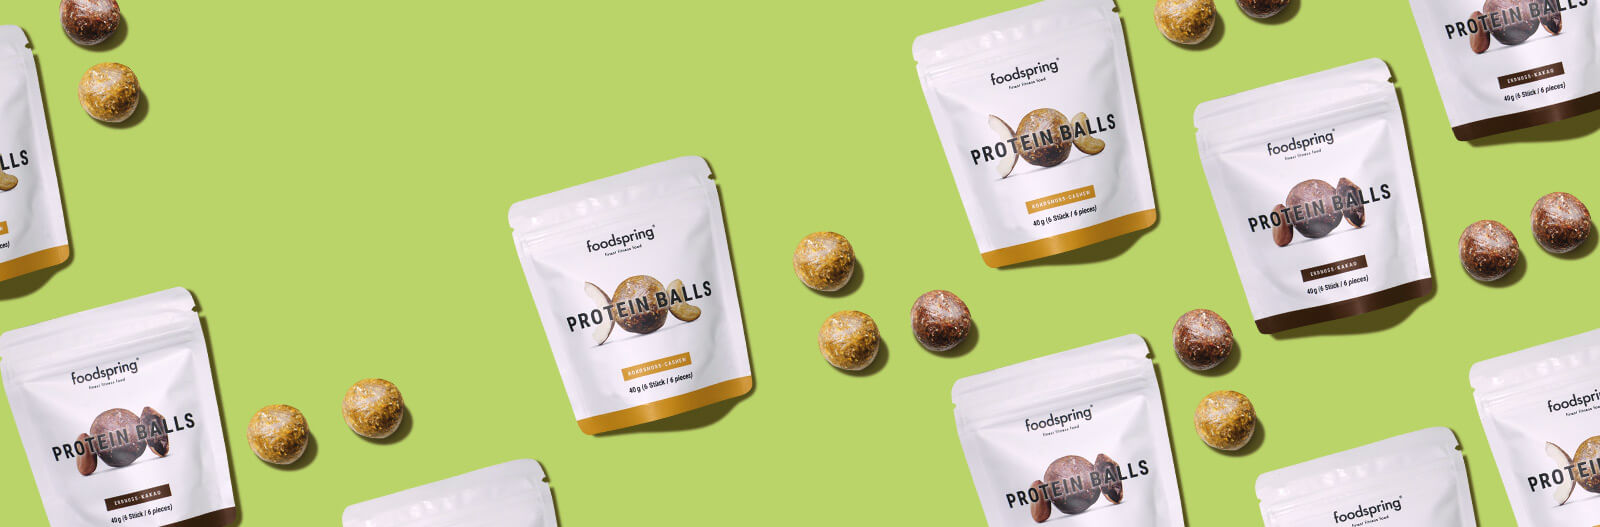 The pocket-sized protein snack.